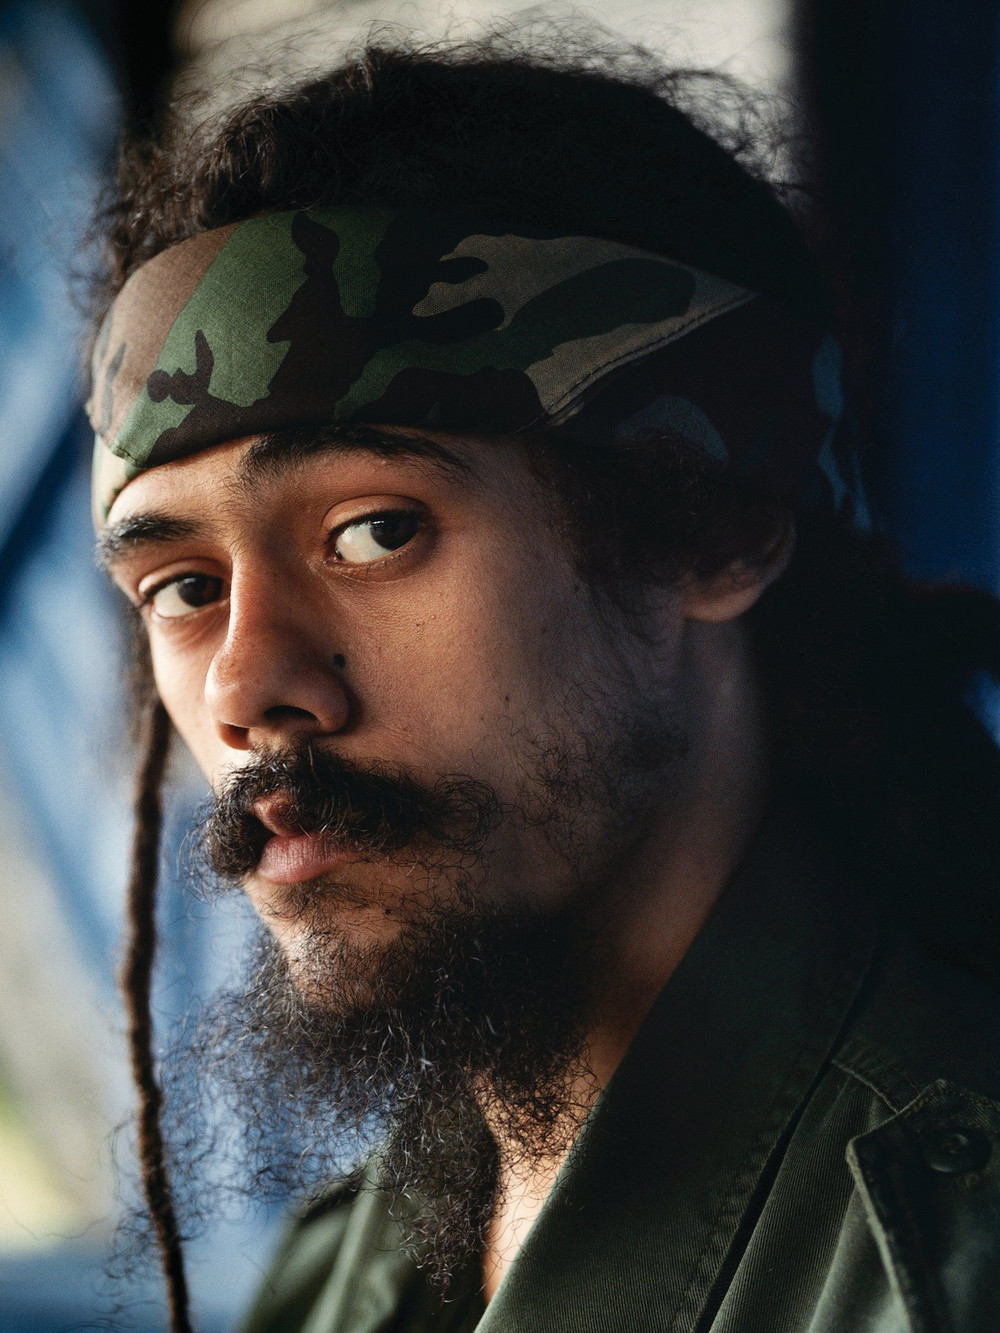 Damian marley on spotify thecheapjerseys Choice Image